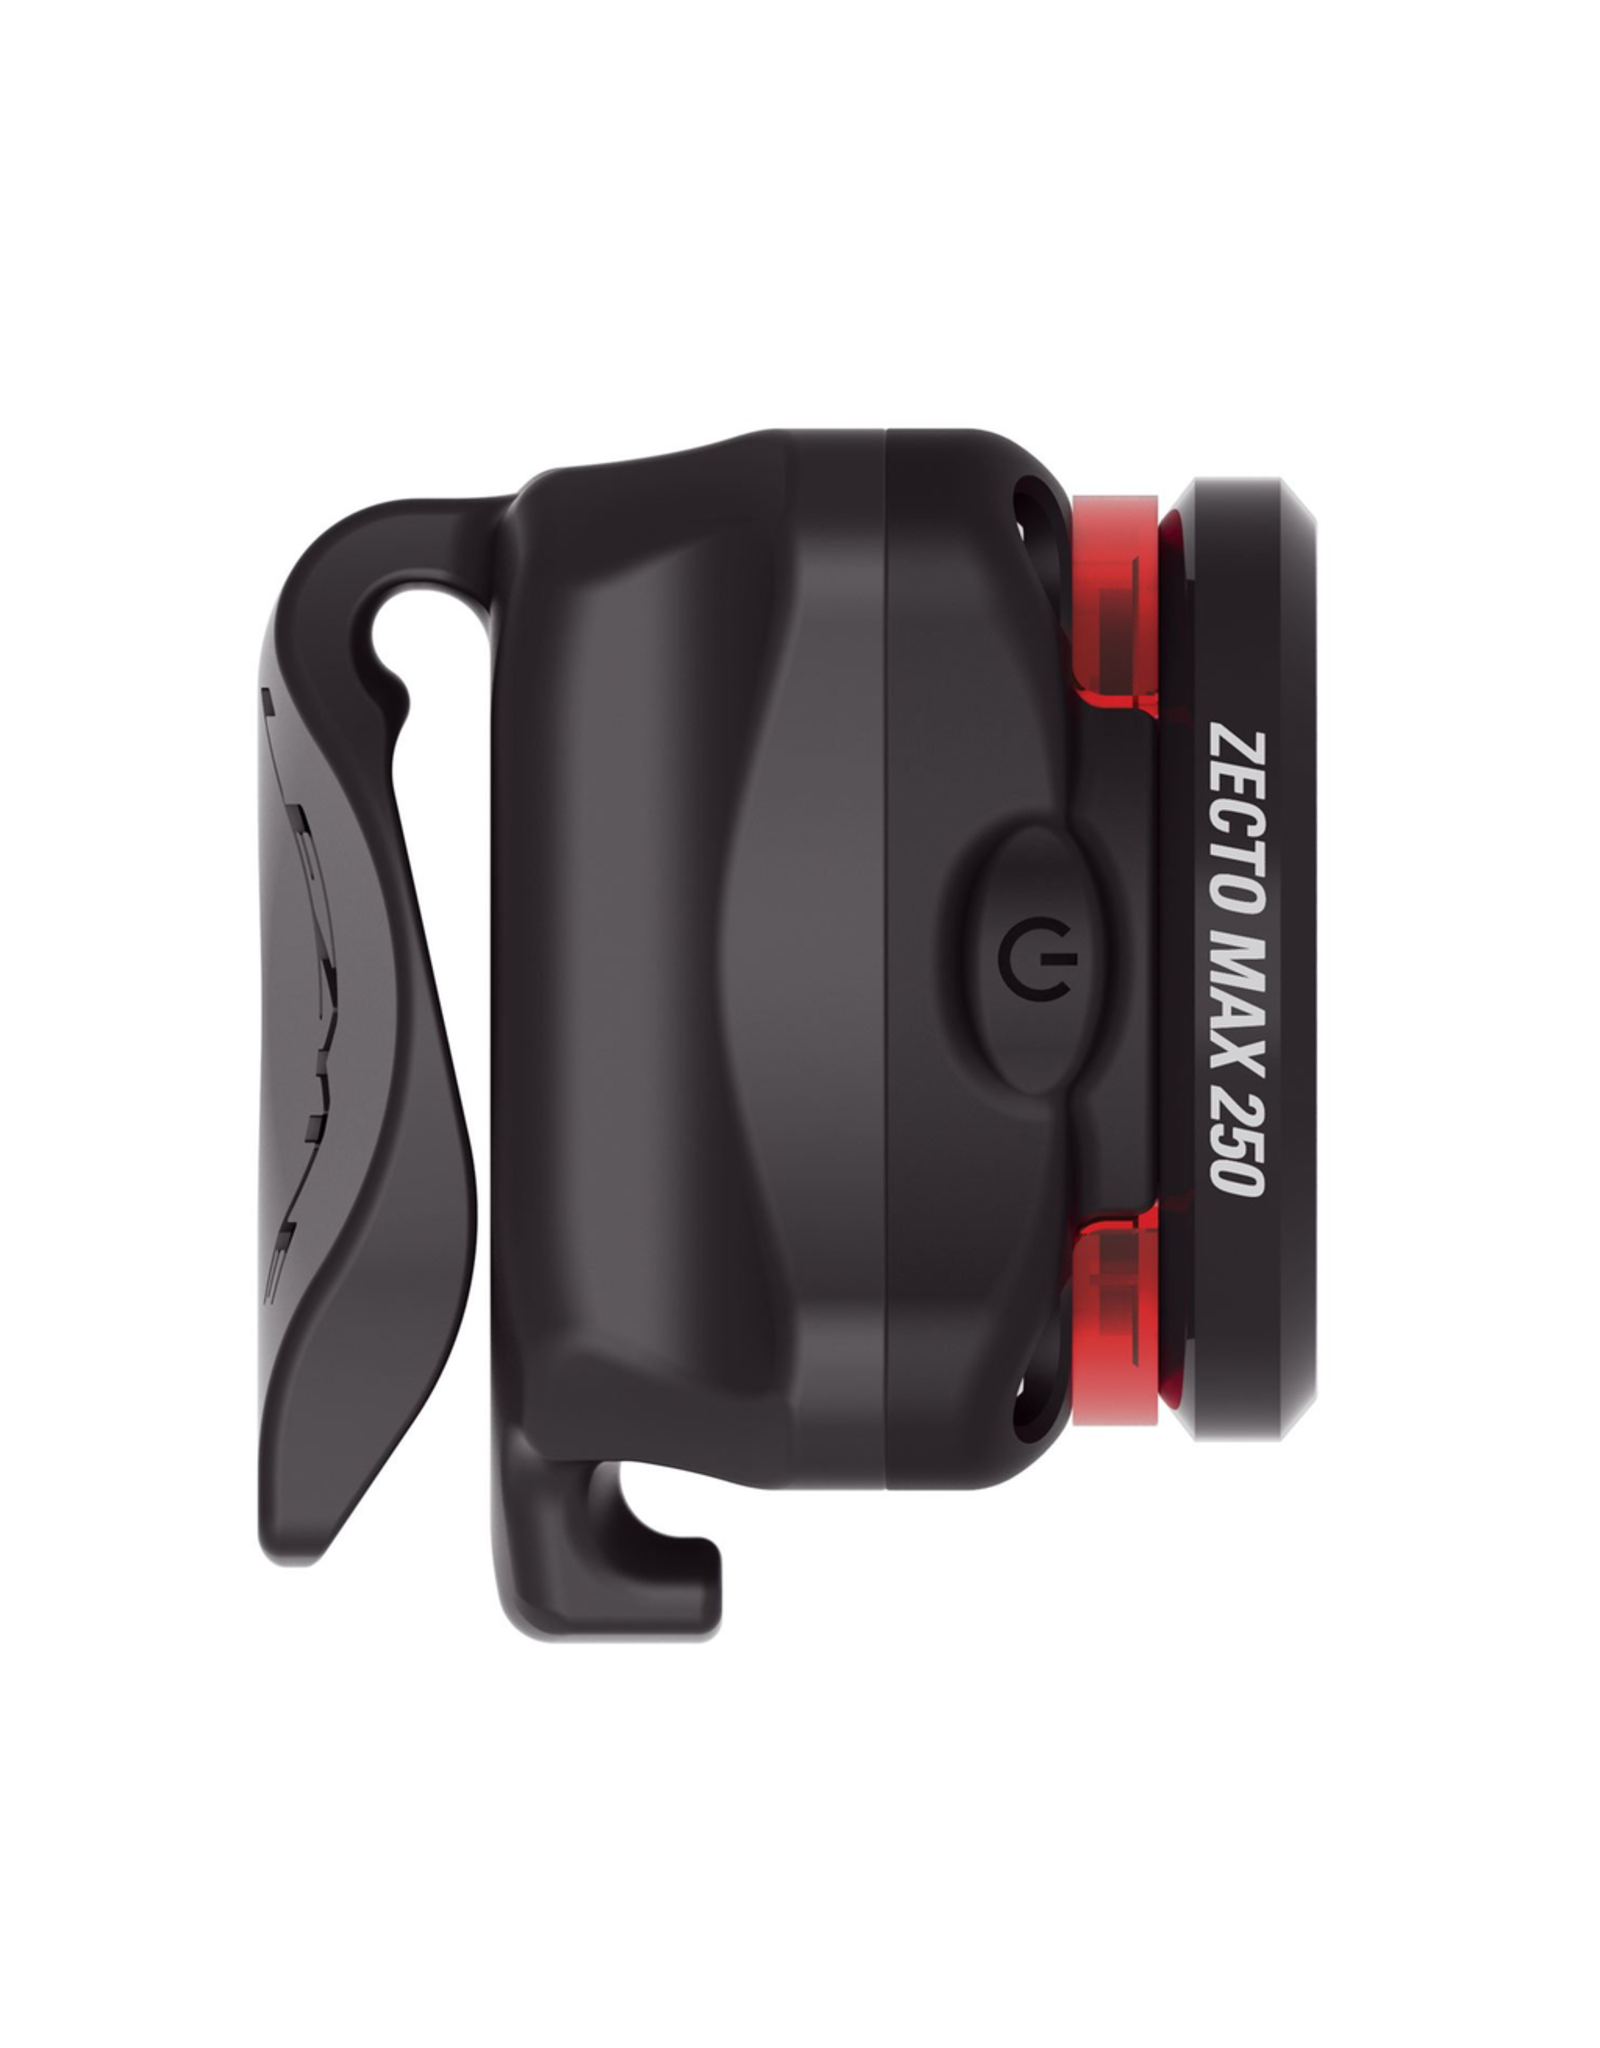 LEZYNE LIGHT TAIL LIGHT LEZYNE ZECTO DRIVE 80 LUMENS